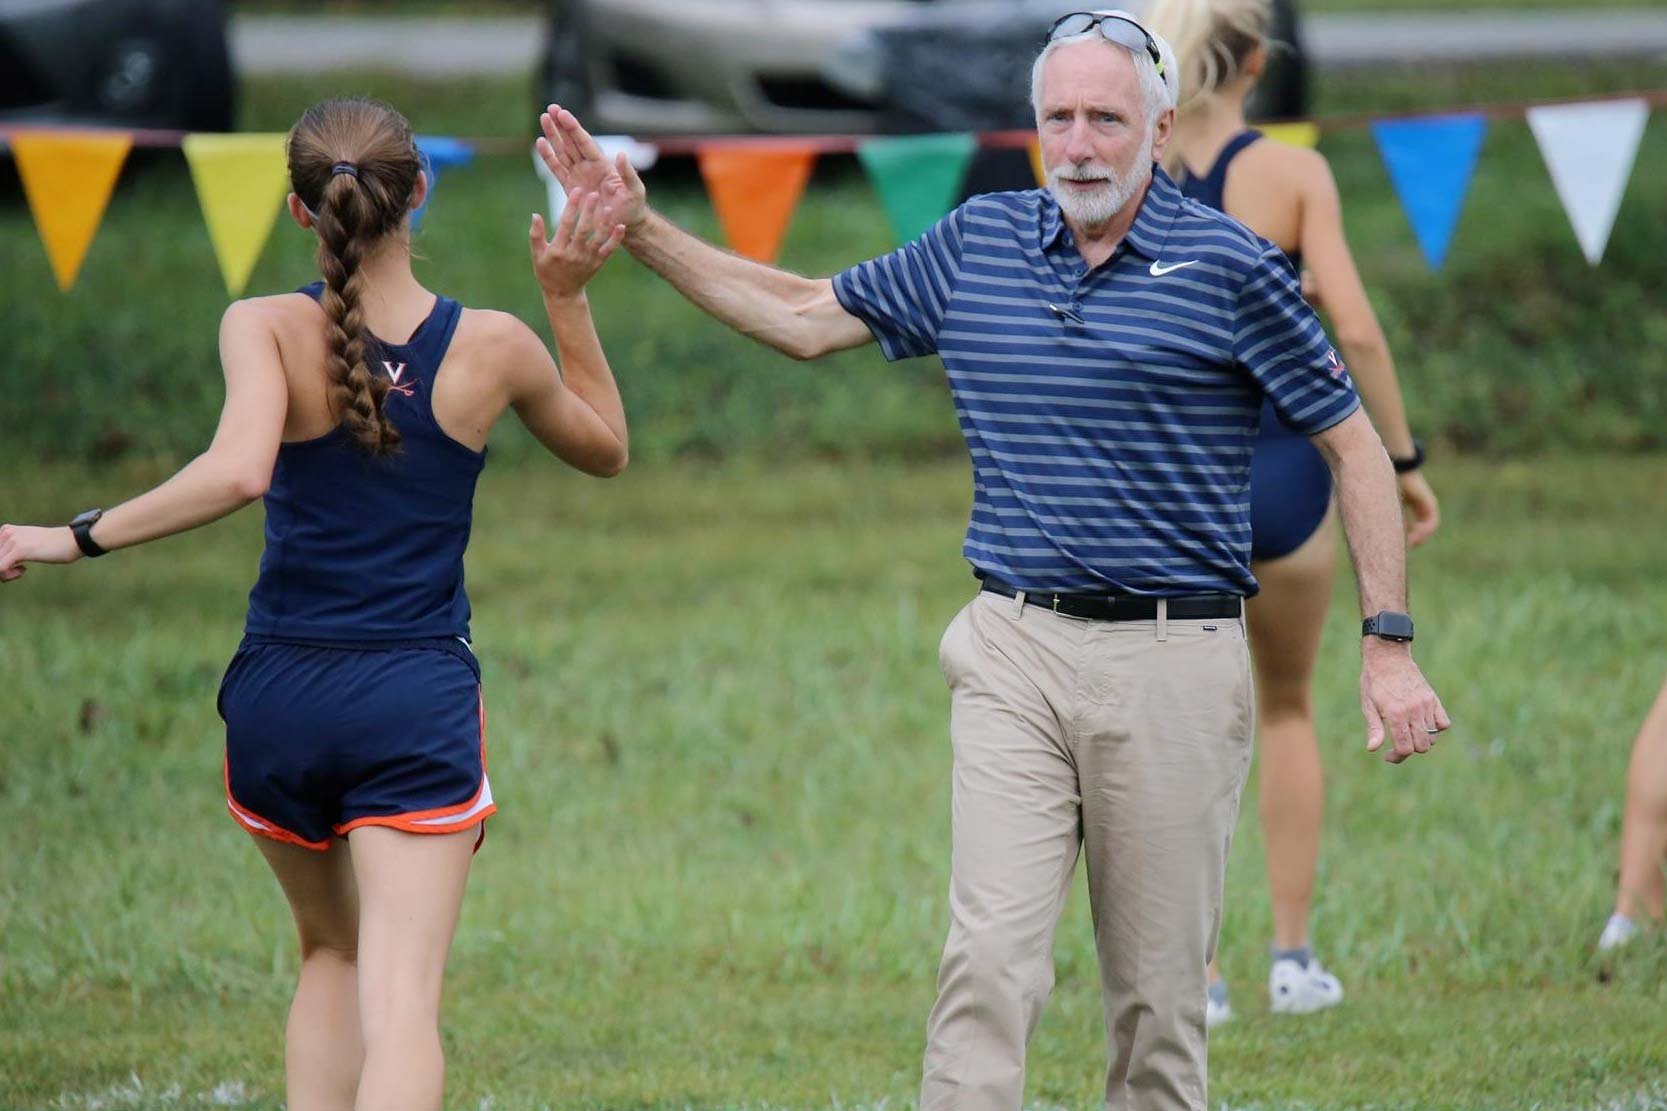 """Vin Lananna said he is """"100 percent"""" confident that UVA can be a national power in track and field and cross-country. (Photo courtesy UVA Athletics)"""